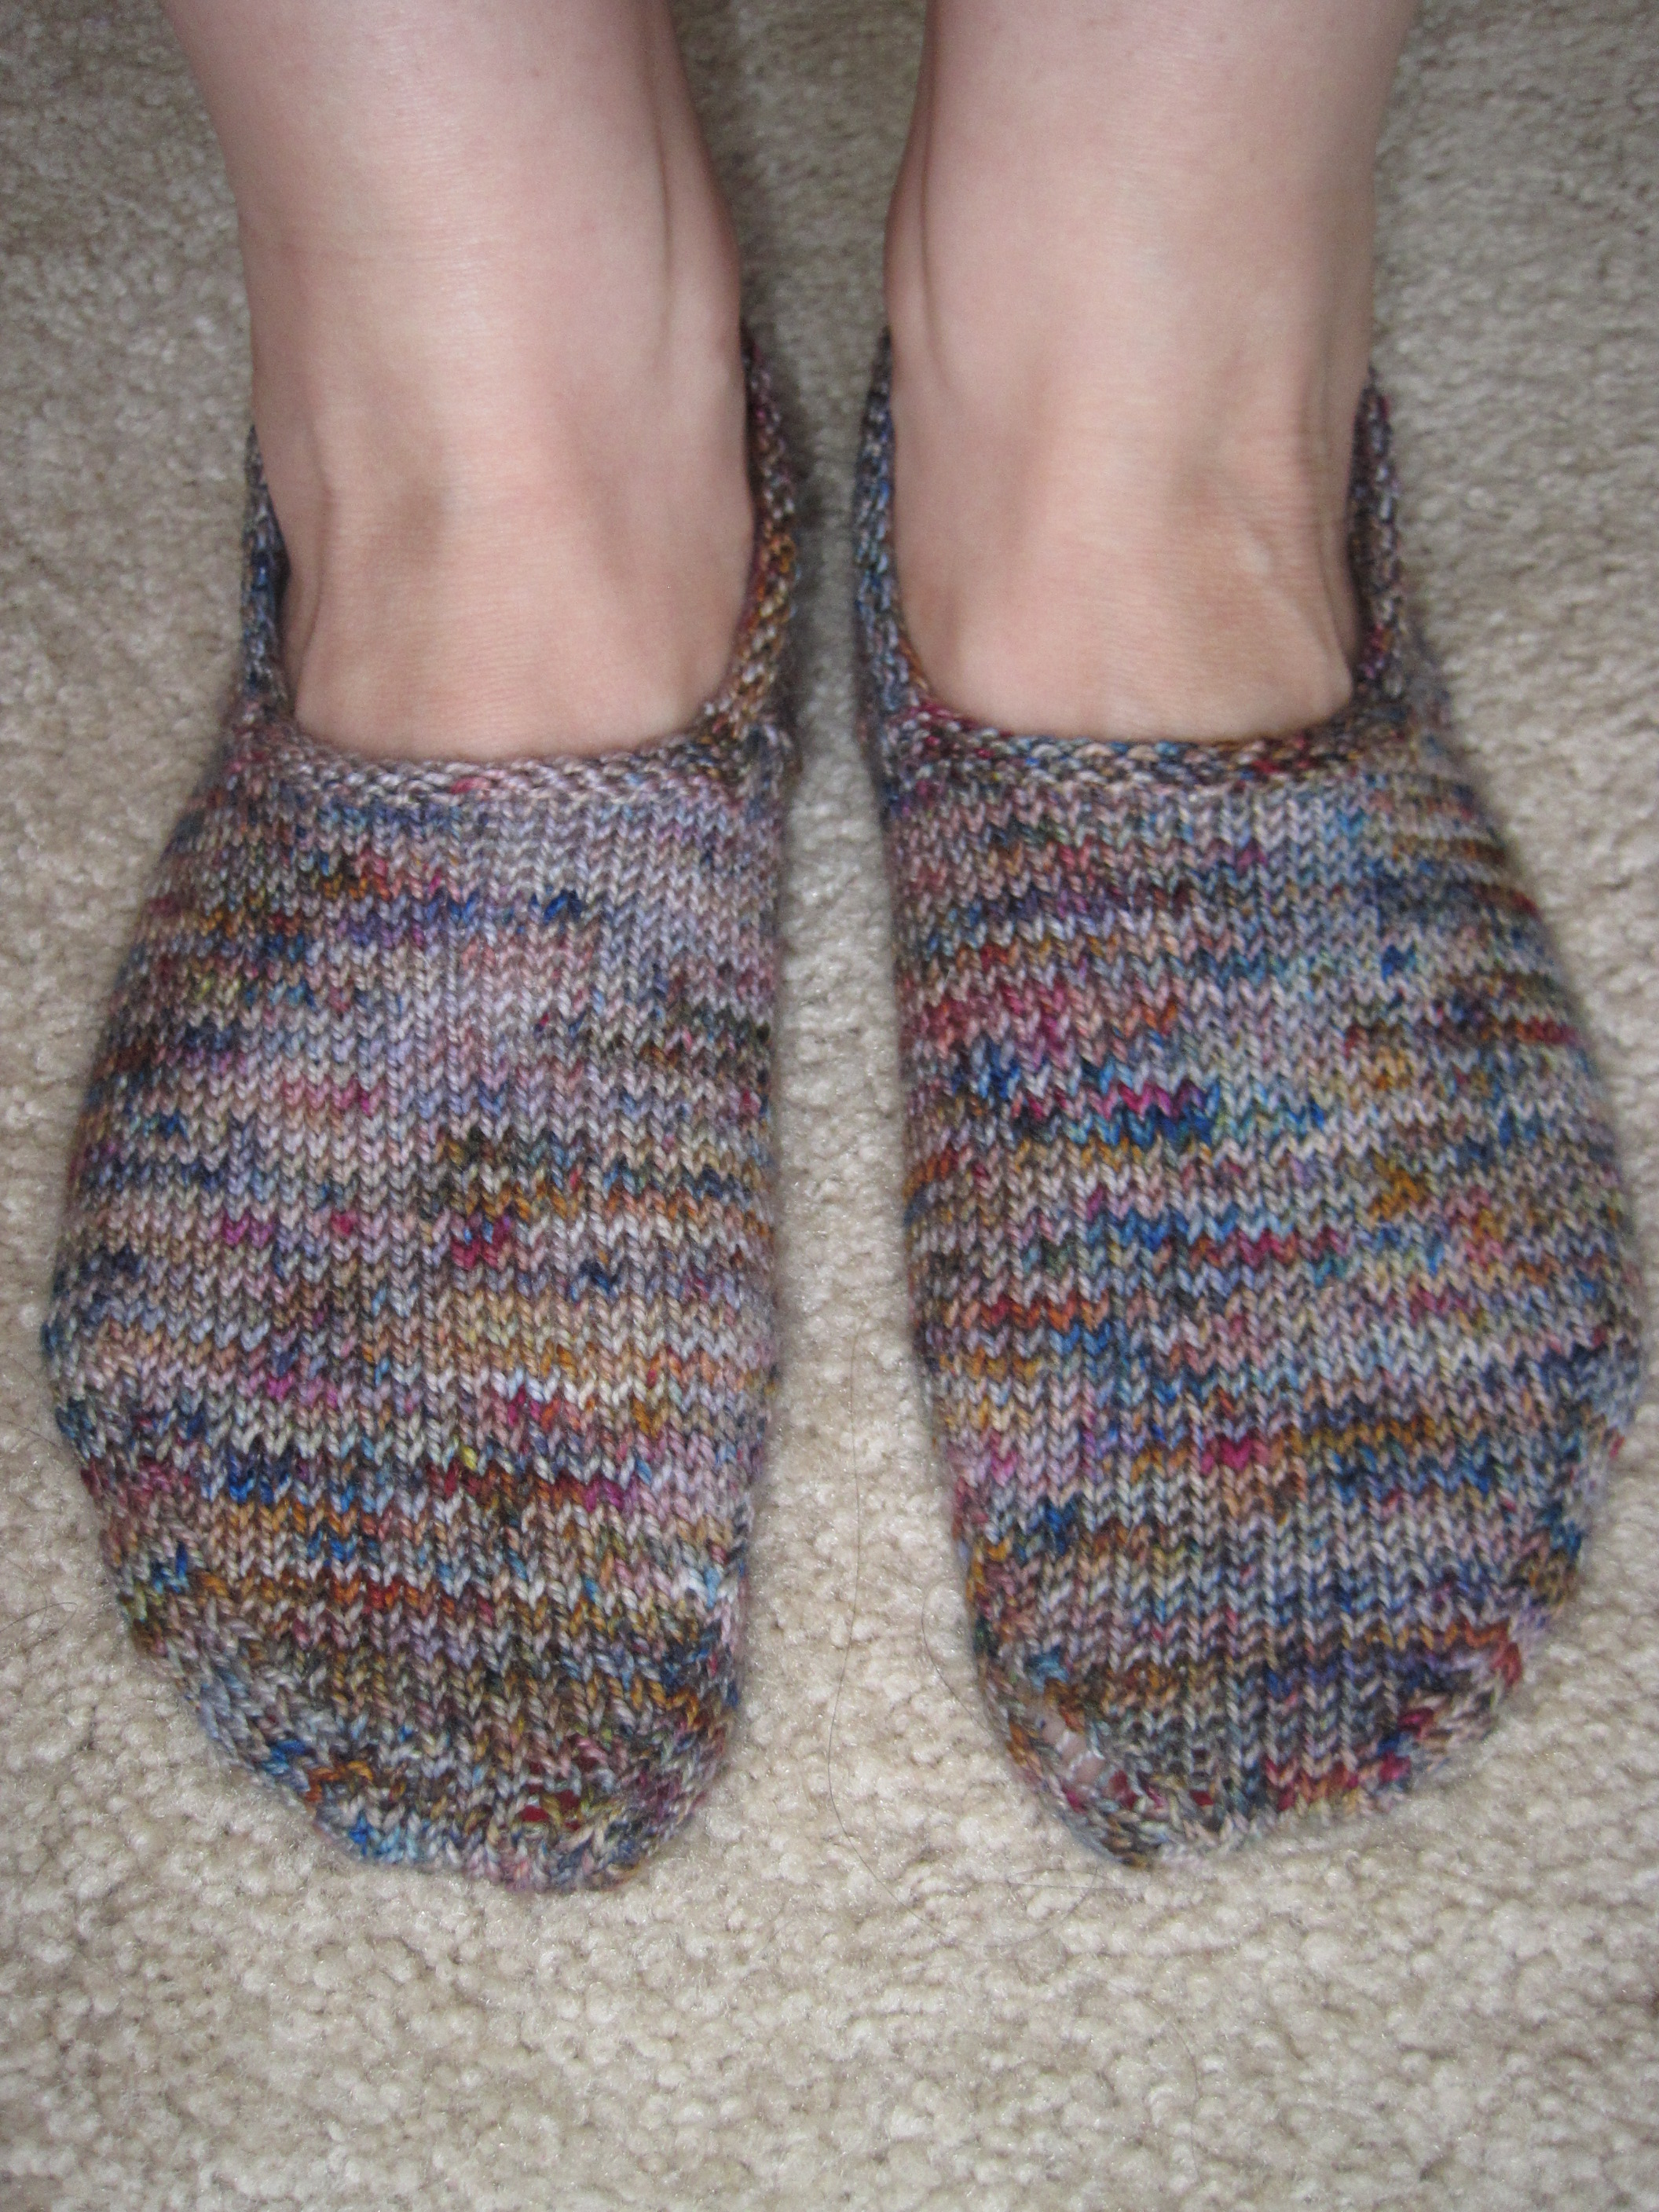 Hermosa Knitted Bed Socks Free Patterns Cresta - Manta de Tejer ...